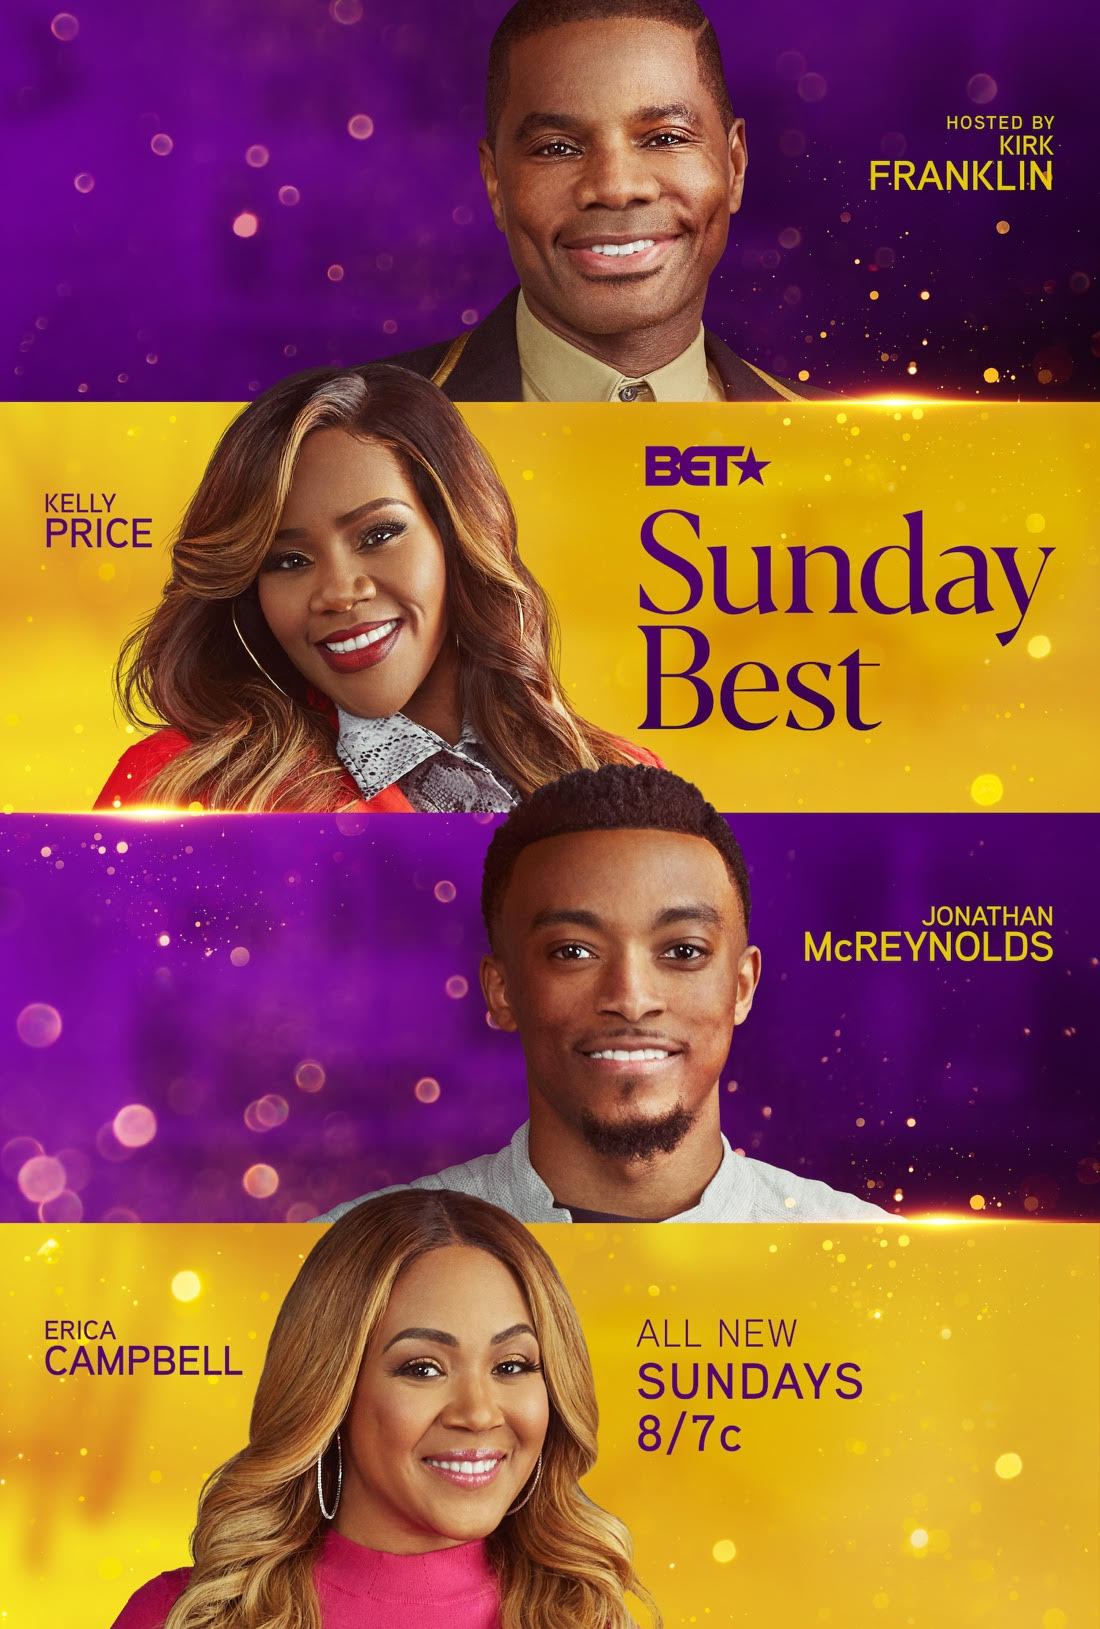 Sundaybest on bet best trading platforms for binary options